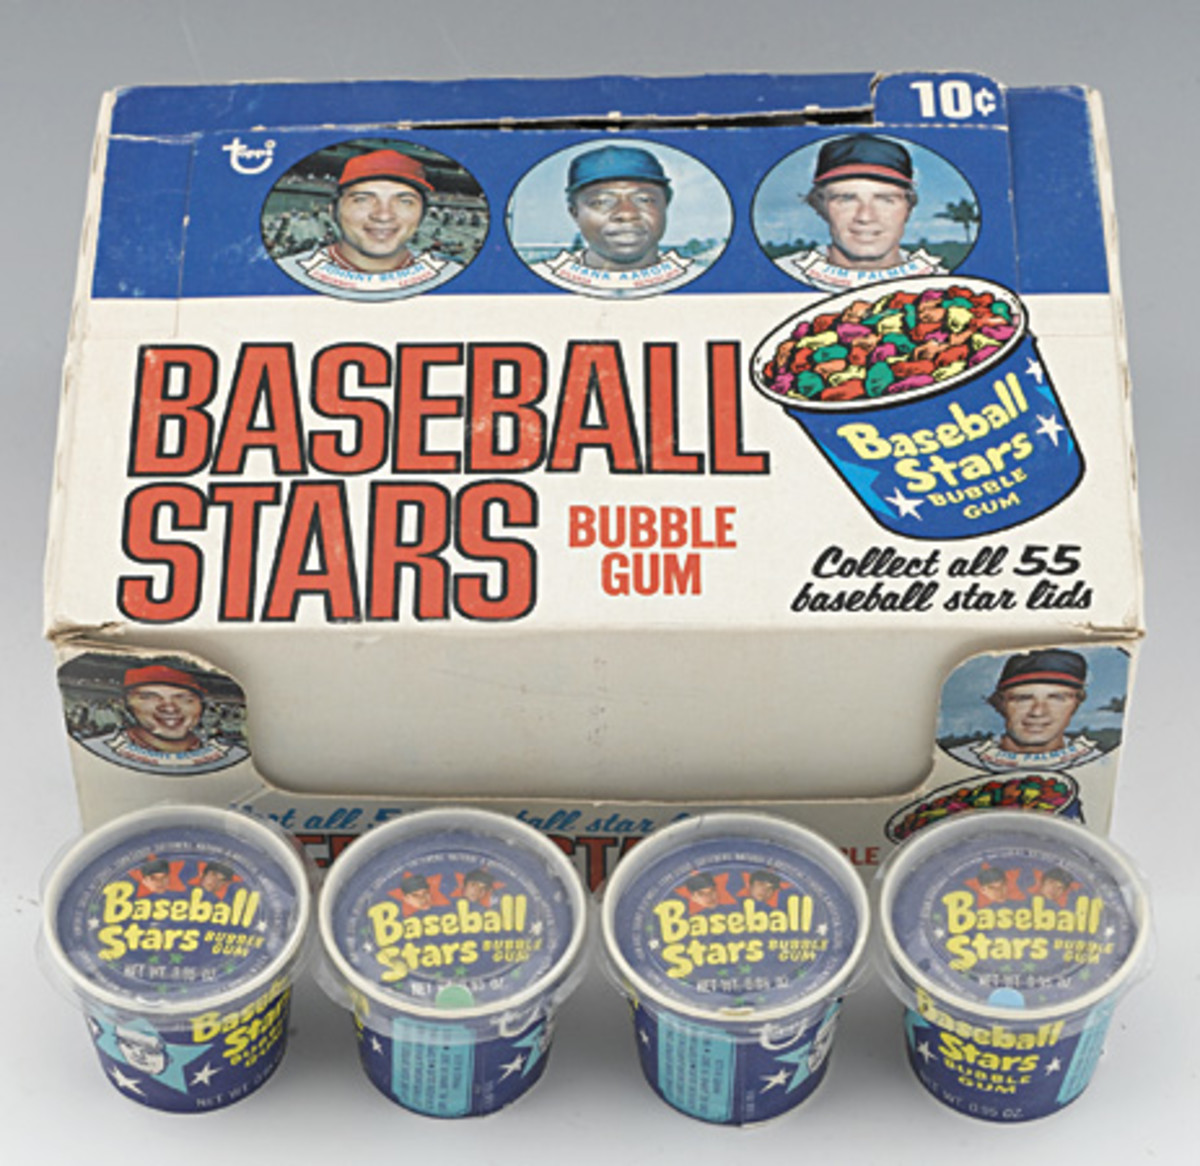 In the early 1970s, Topps released Baseball Stars Bubble Gum that included pictures of baseball players under the lids of the tubs. In 1973, Candy Lid tubs cost 10 cents each, with limited distribution.